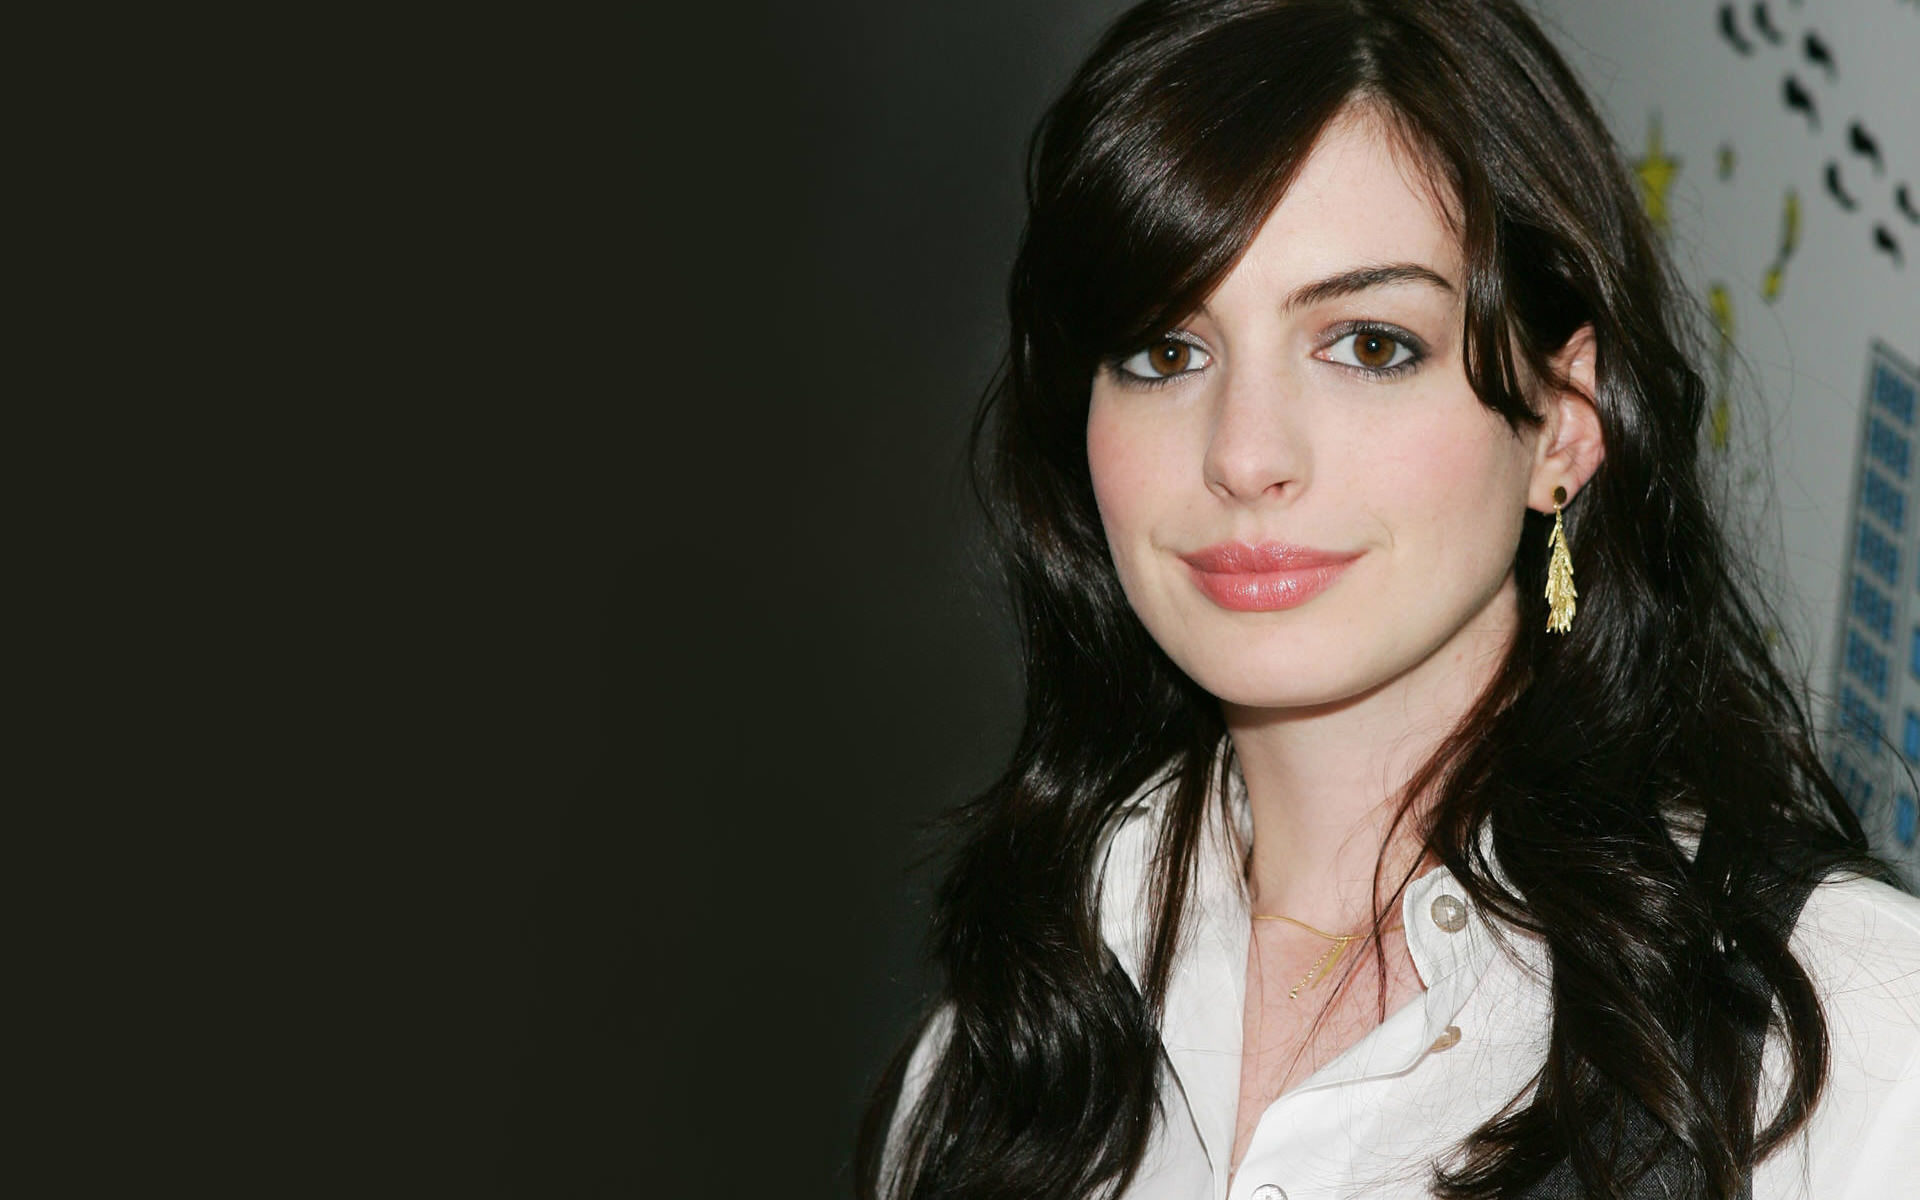 Anne Hathaway wallpaper 5907